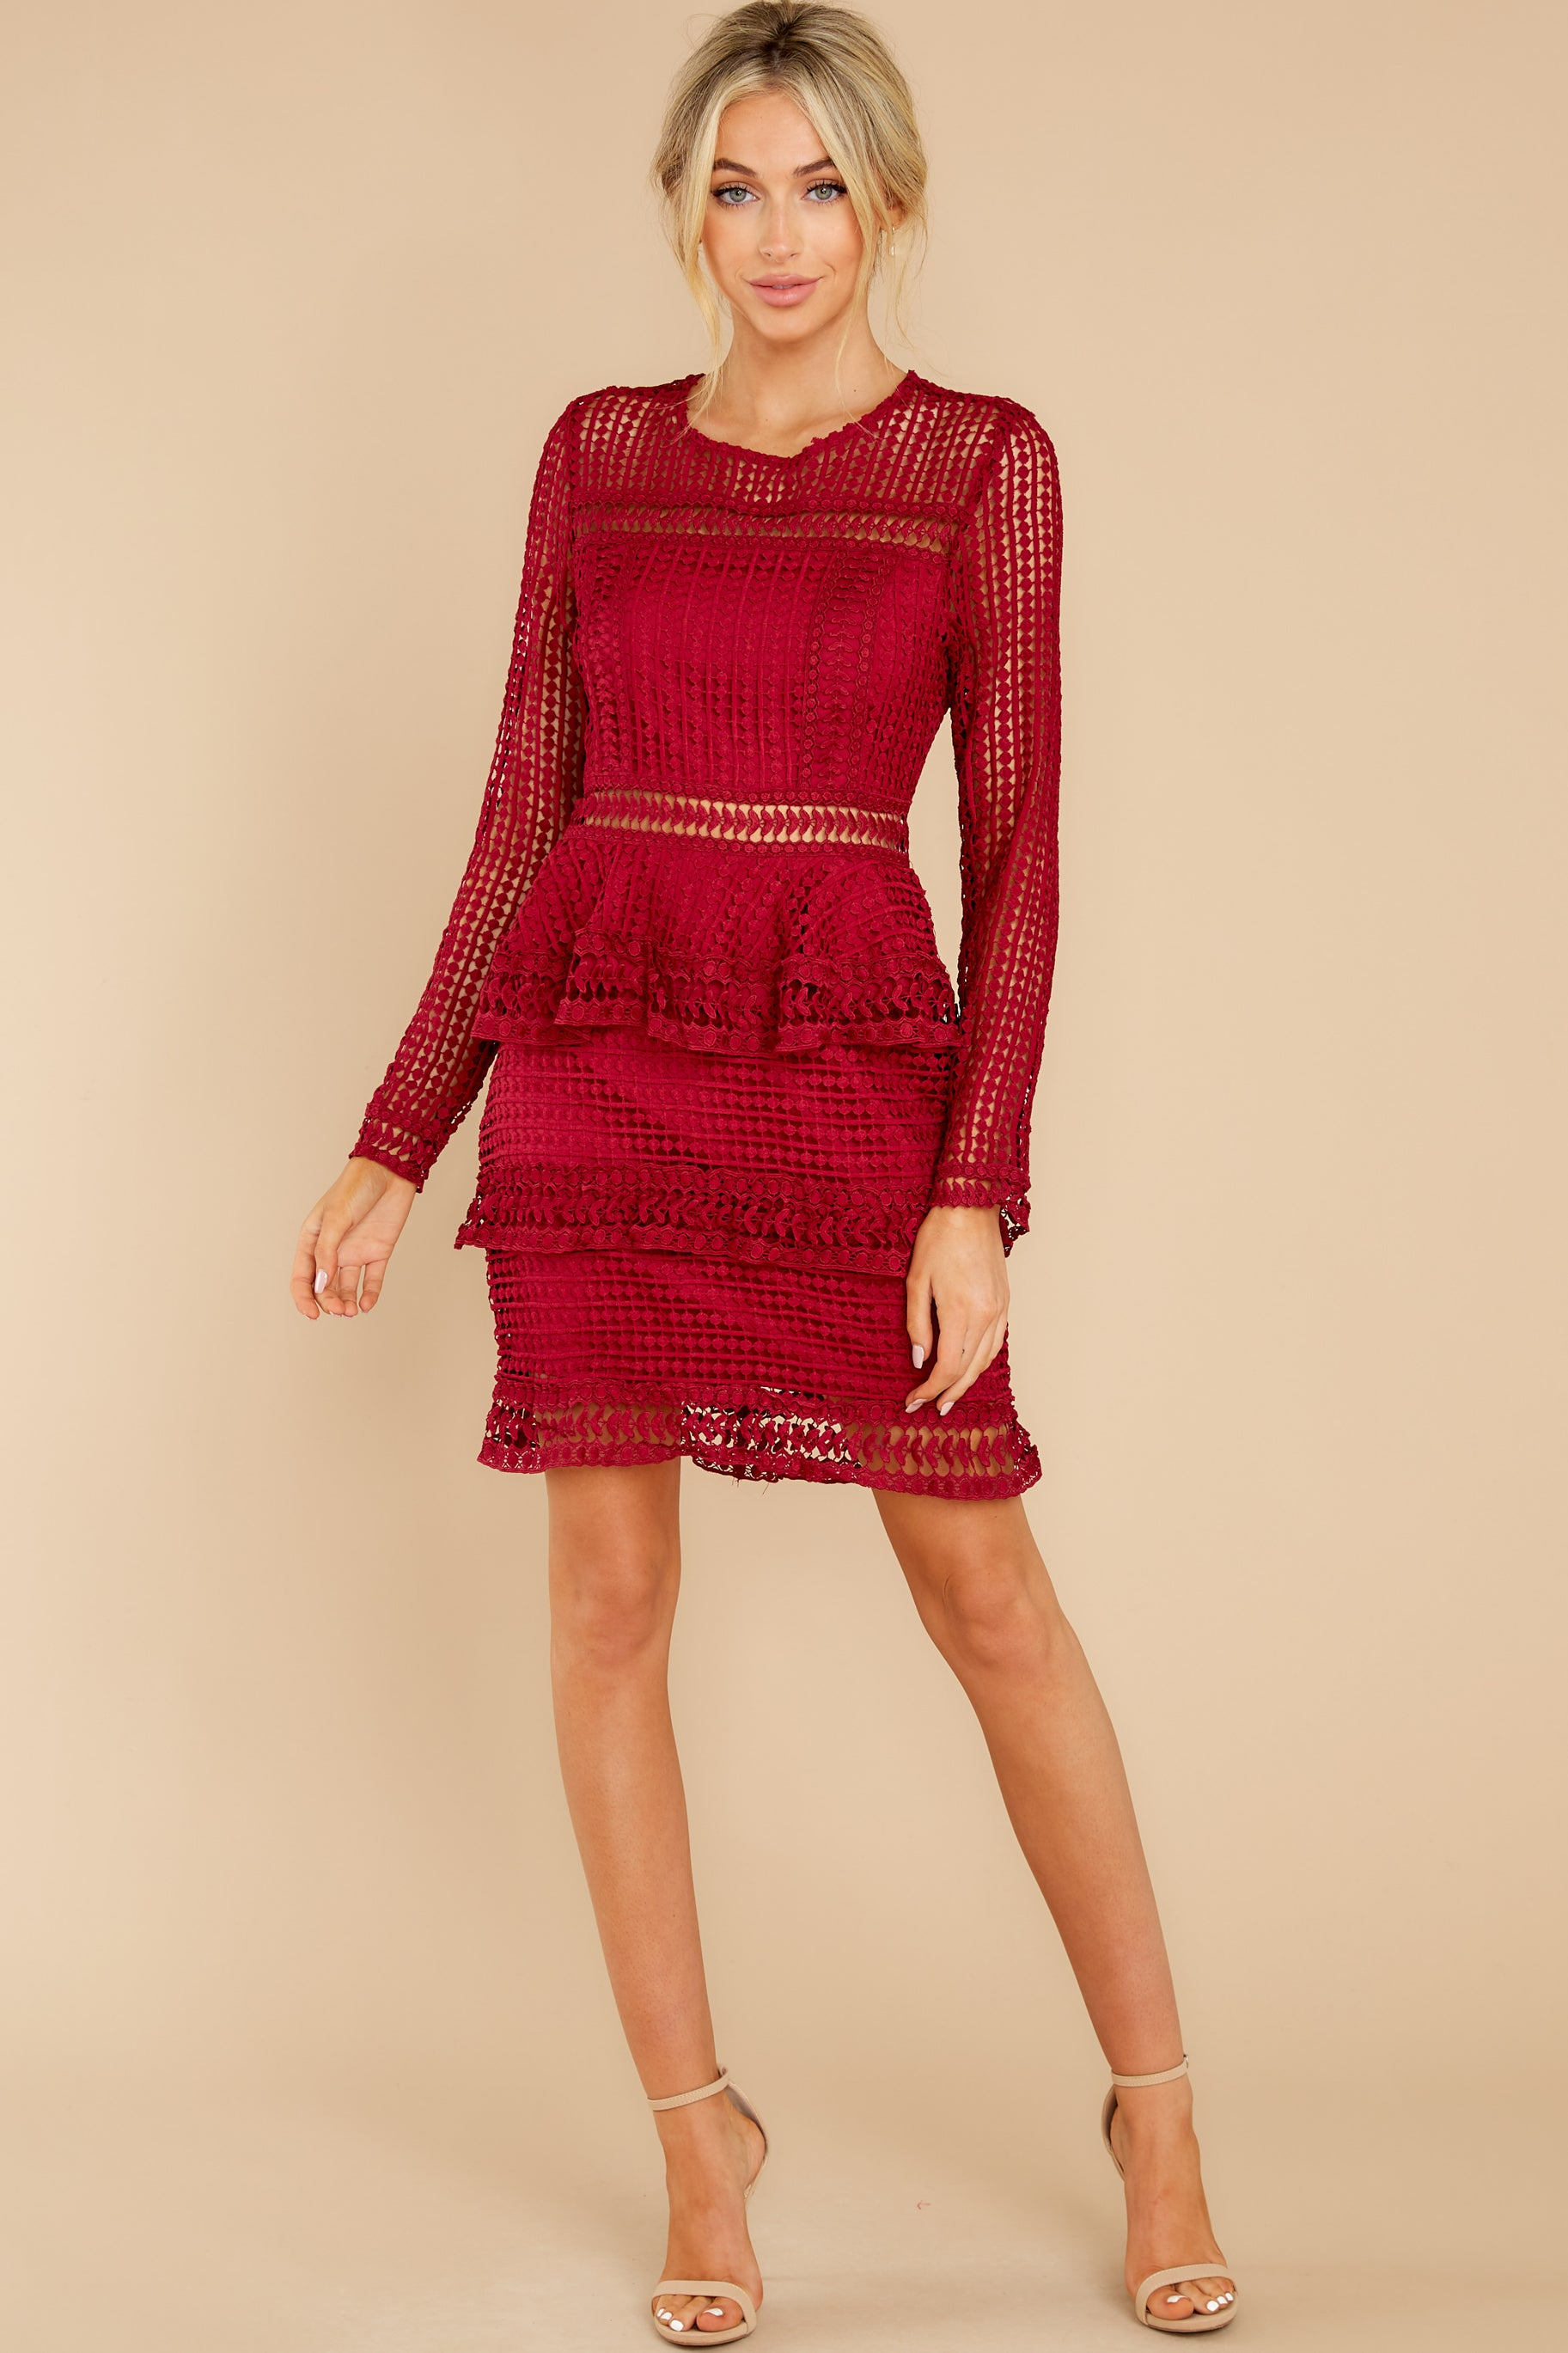 3 Out For Love Burgundy Lace Dress at reddress.com